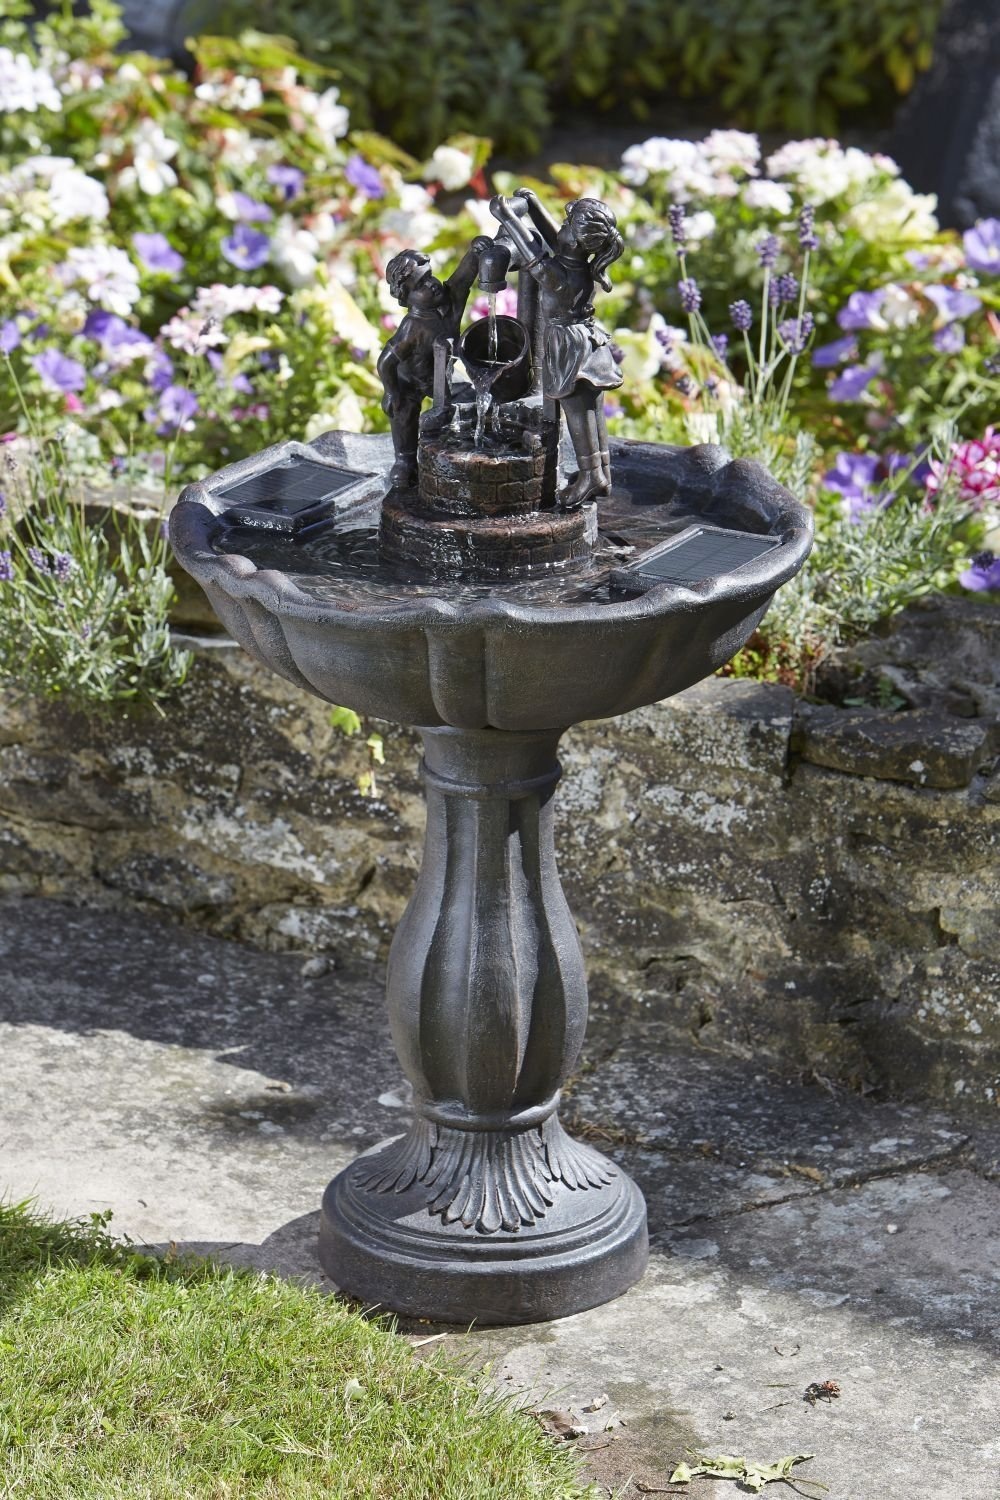 ideas club solar lights outdoor with fountains hardscaping pump garden water for lovers lowes small your fountain kit